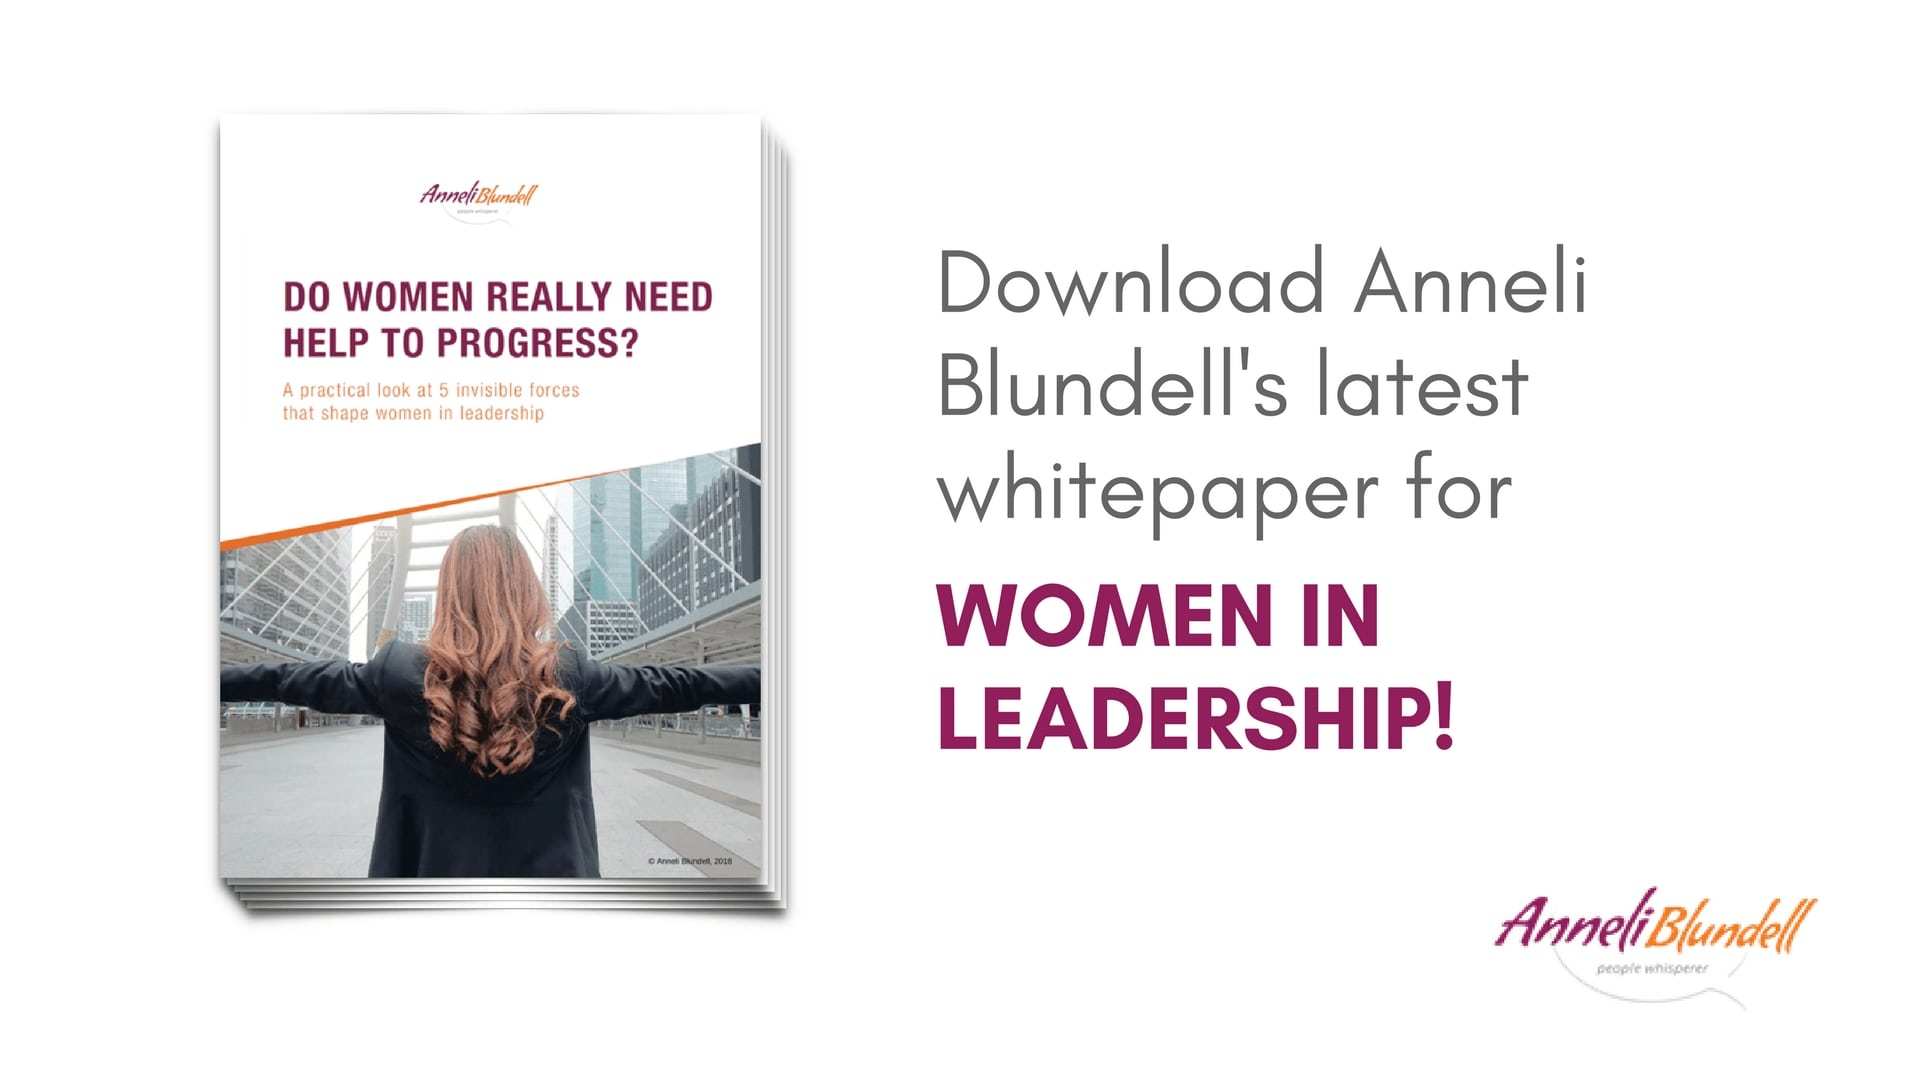 Anneli blundell women in leadership white paper